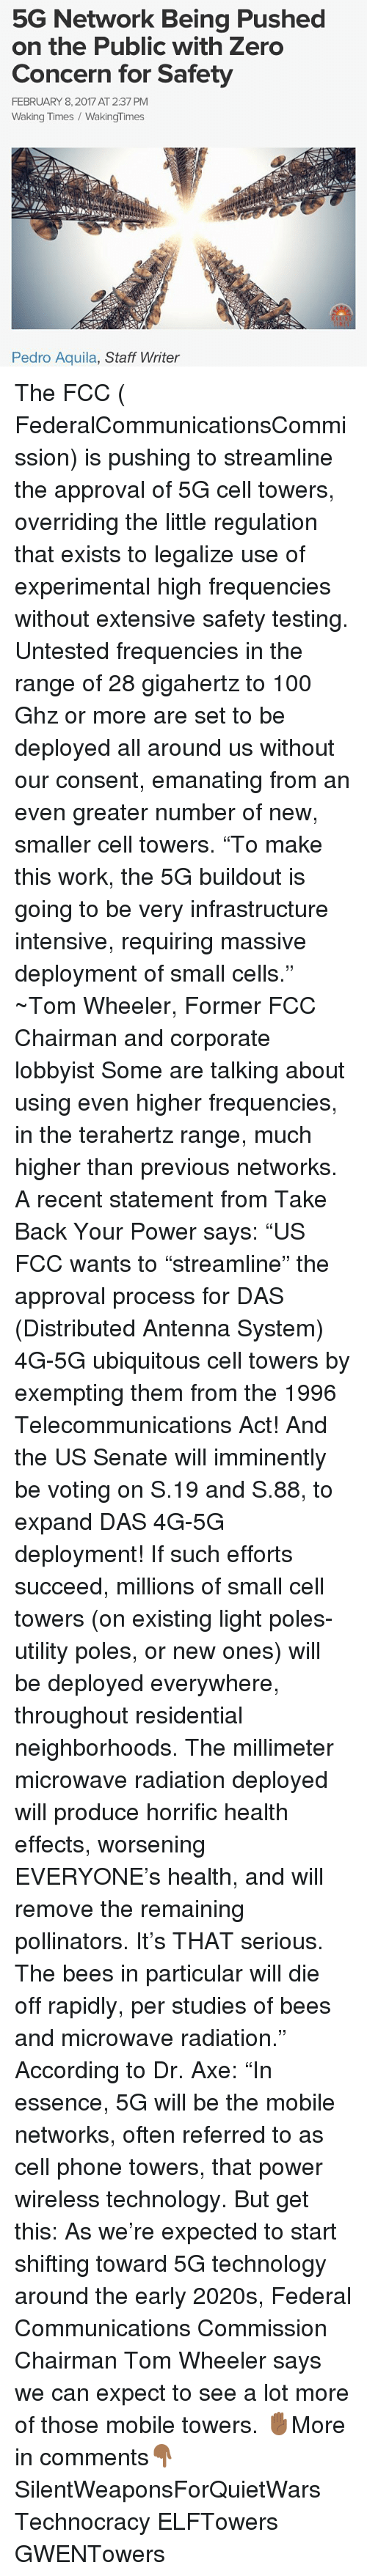 the objectives and impact of the telecommunications act of 1996 in the us Telecommunications and media convergence: selected issues for consideration congressional research service summary the passage of the 1996 telecommunications act (pl 104-104) resulted in a major revision of.